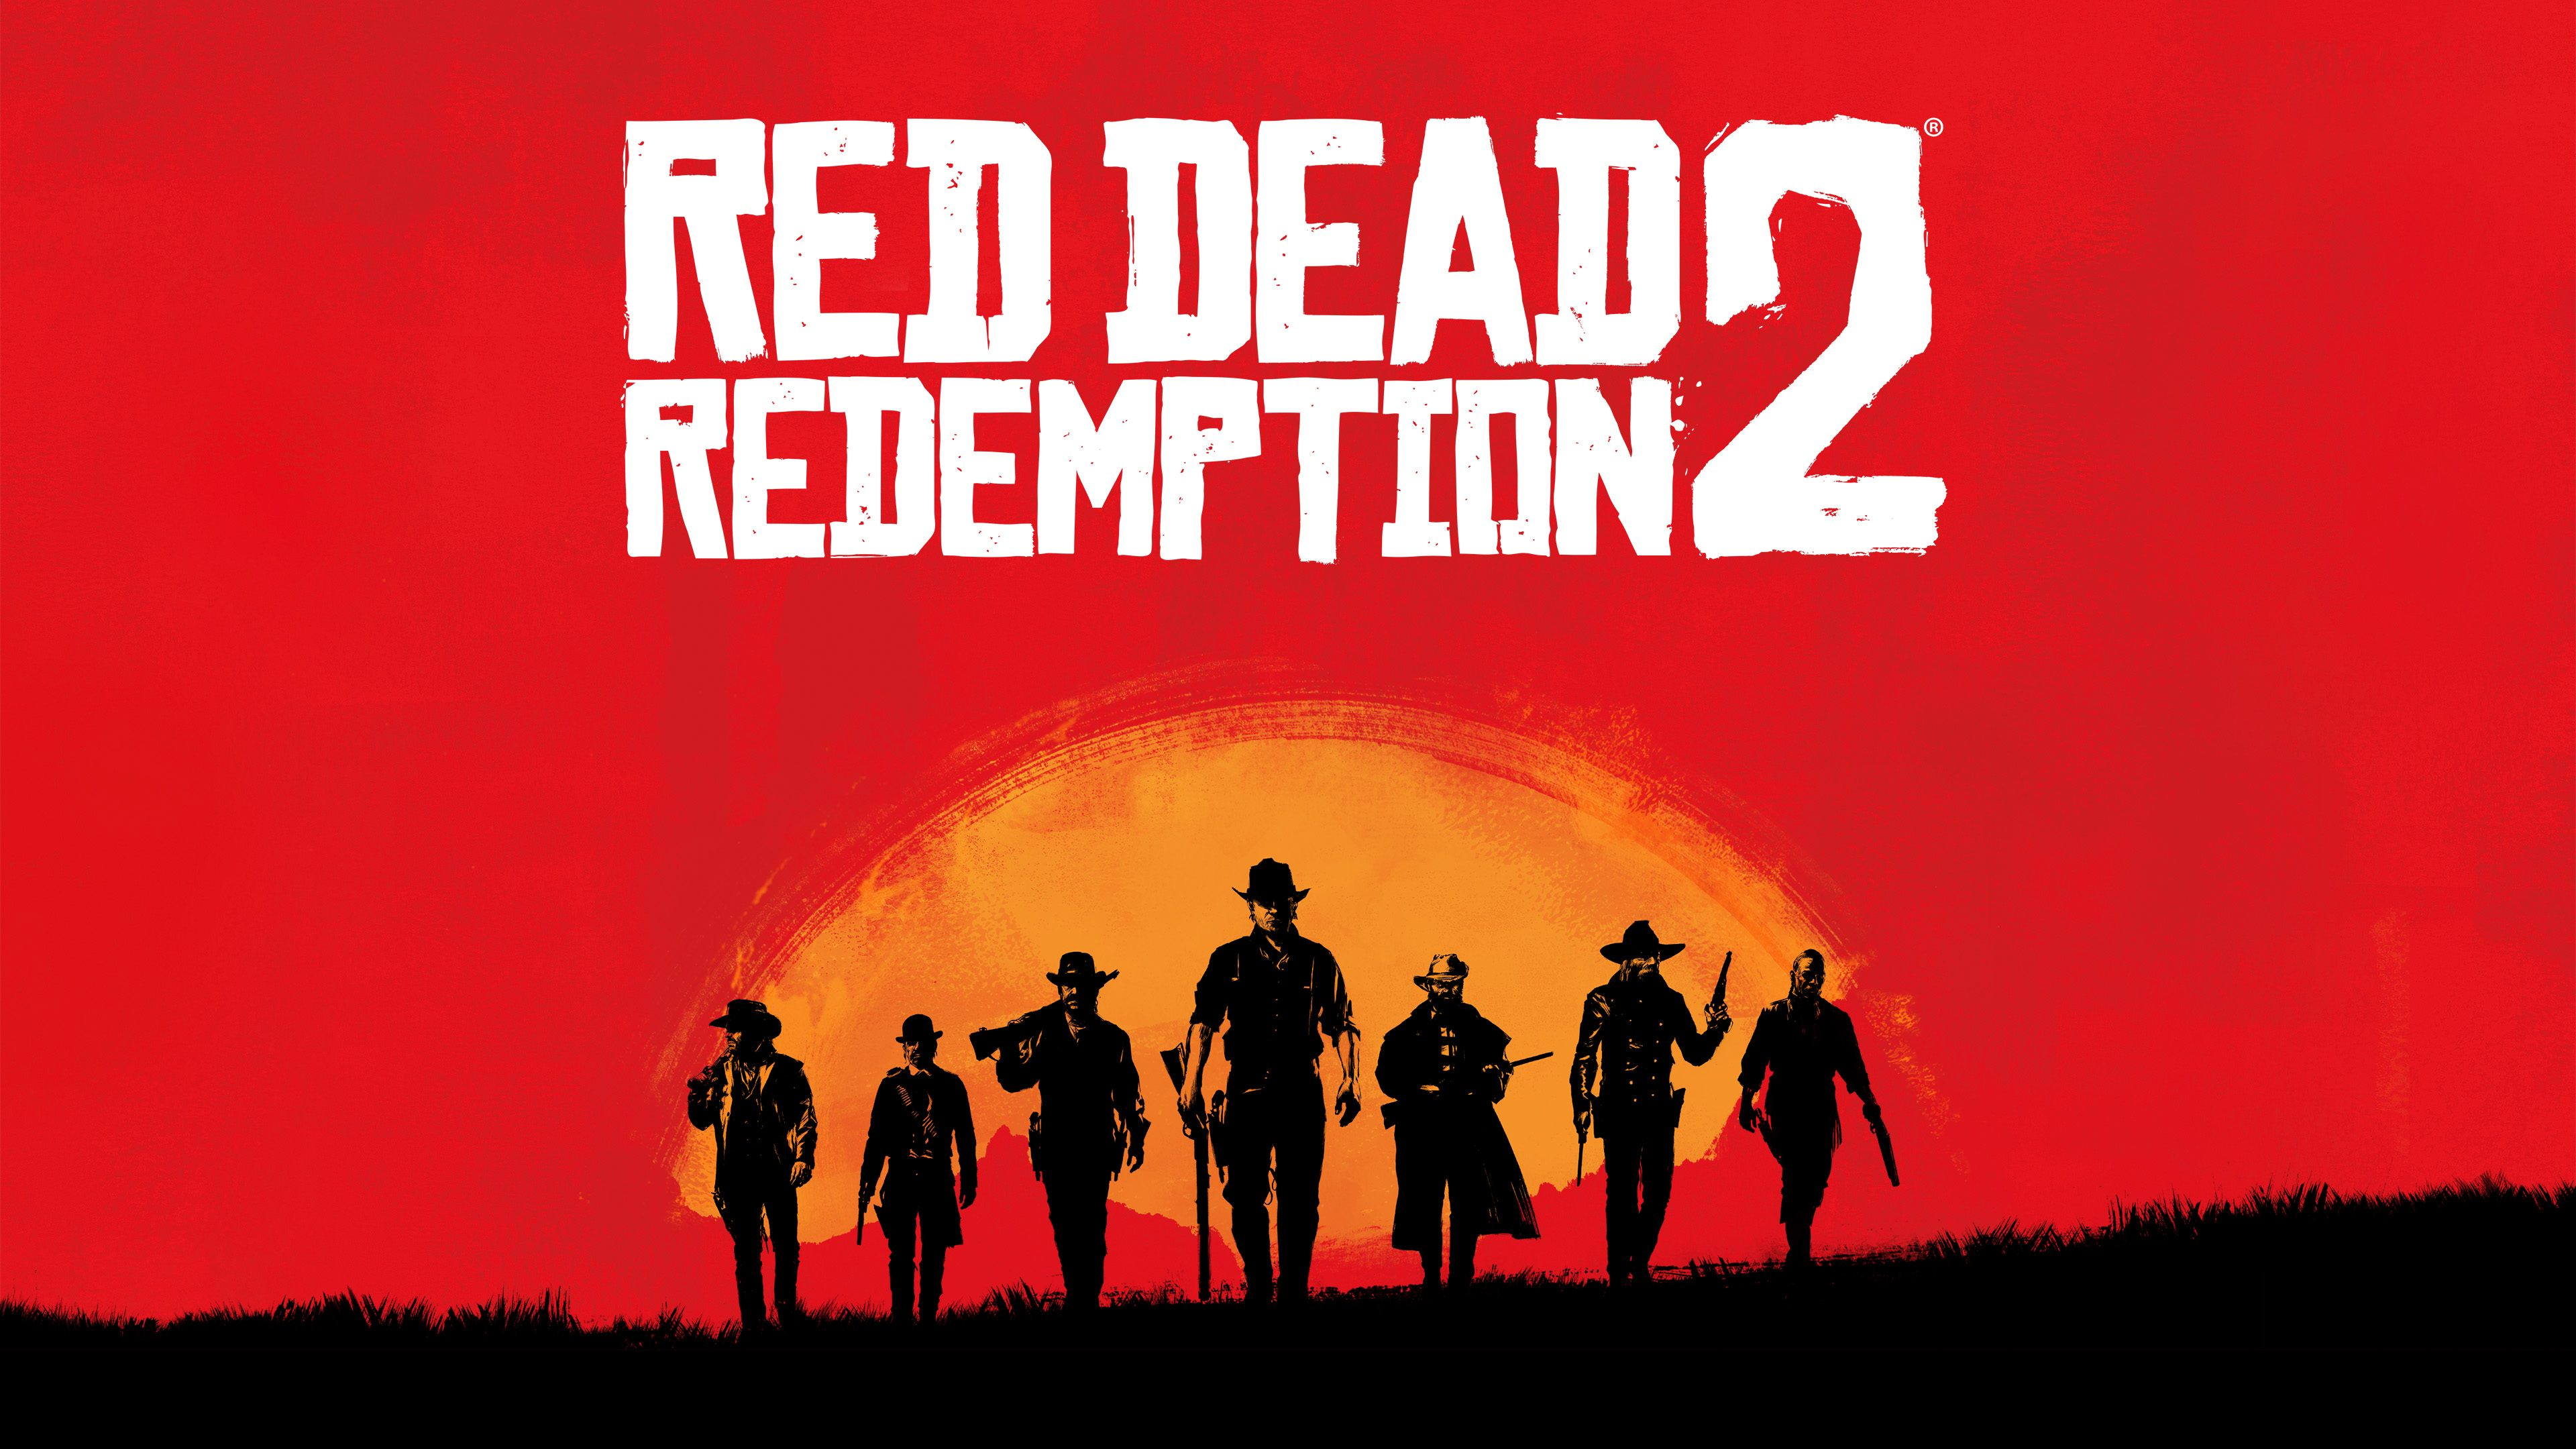 Amidst The Red Dead Redemption 2 Mania, Independent Stores Are Getting Delayed Copies